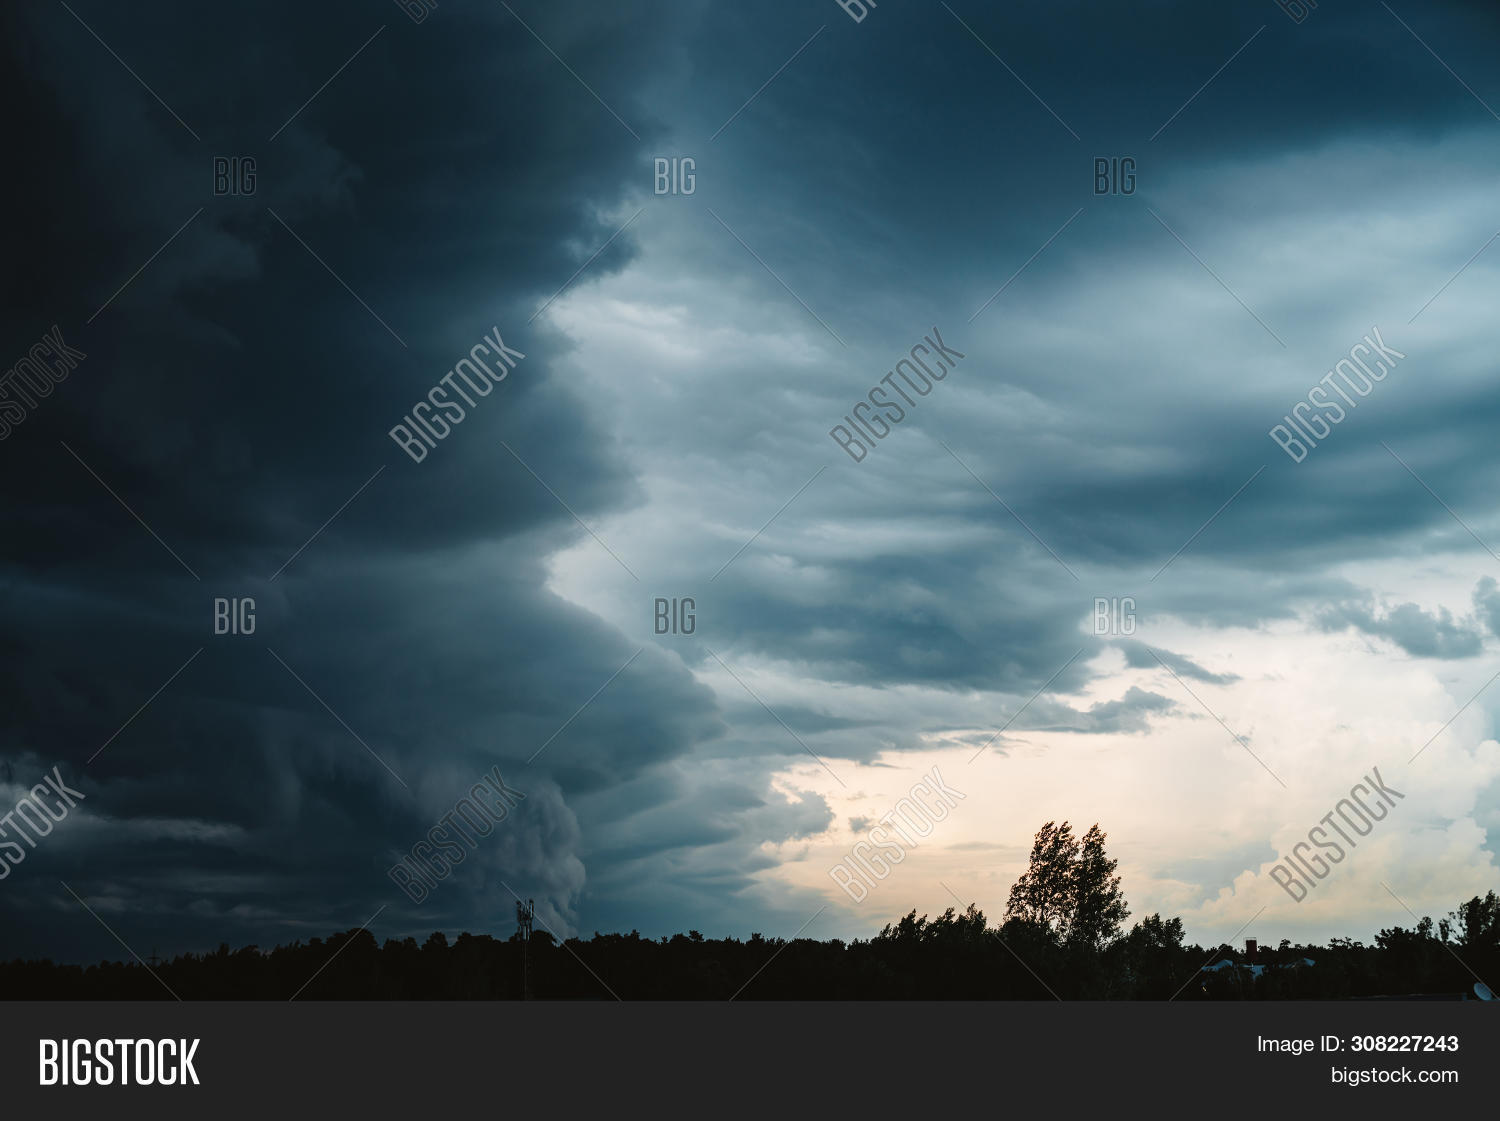 atmosphere,backdrop,background,bad,beautiful,blue,cirrus,climate,cloudiness,clouds,cloudscape,cloudy,cumulonimbus,danger,darkness,dawn,disaster,dramatic,electric,environment,heaven,hurricane,impressive,landscape,layered,majestic,meteorology,moody,nature,ominous,overcast,overcloud,pattern,scenery,scenic,sky,snorter,storm,stormy,stratus,sunrise,sunset,texture,thunder,thunderclouds,thunderstorm,weather,wind,windstorm